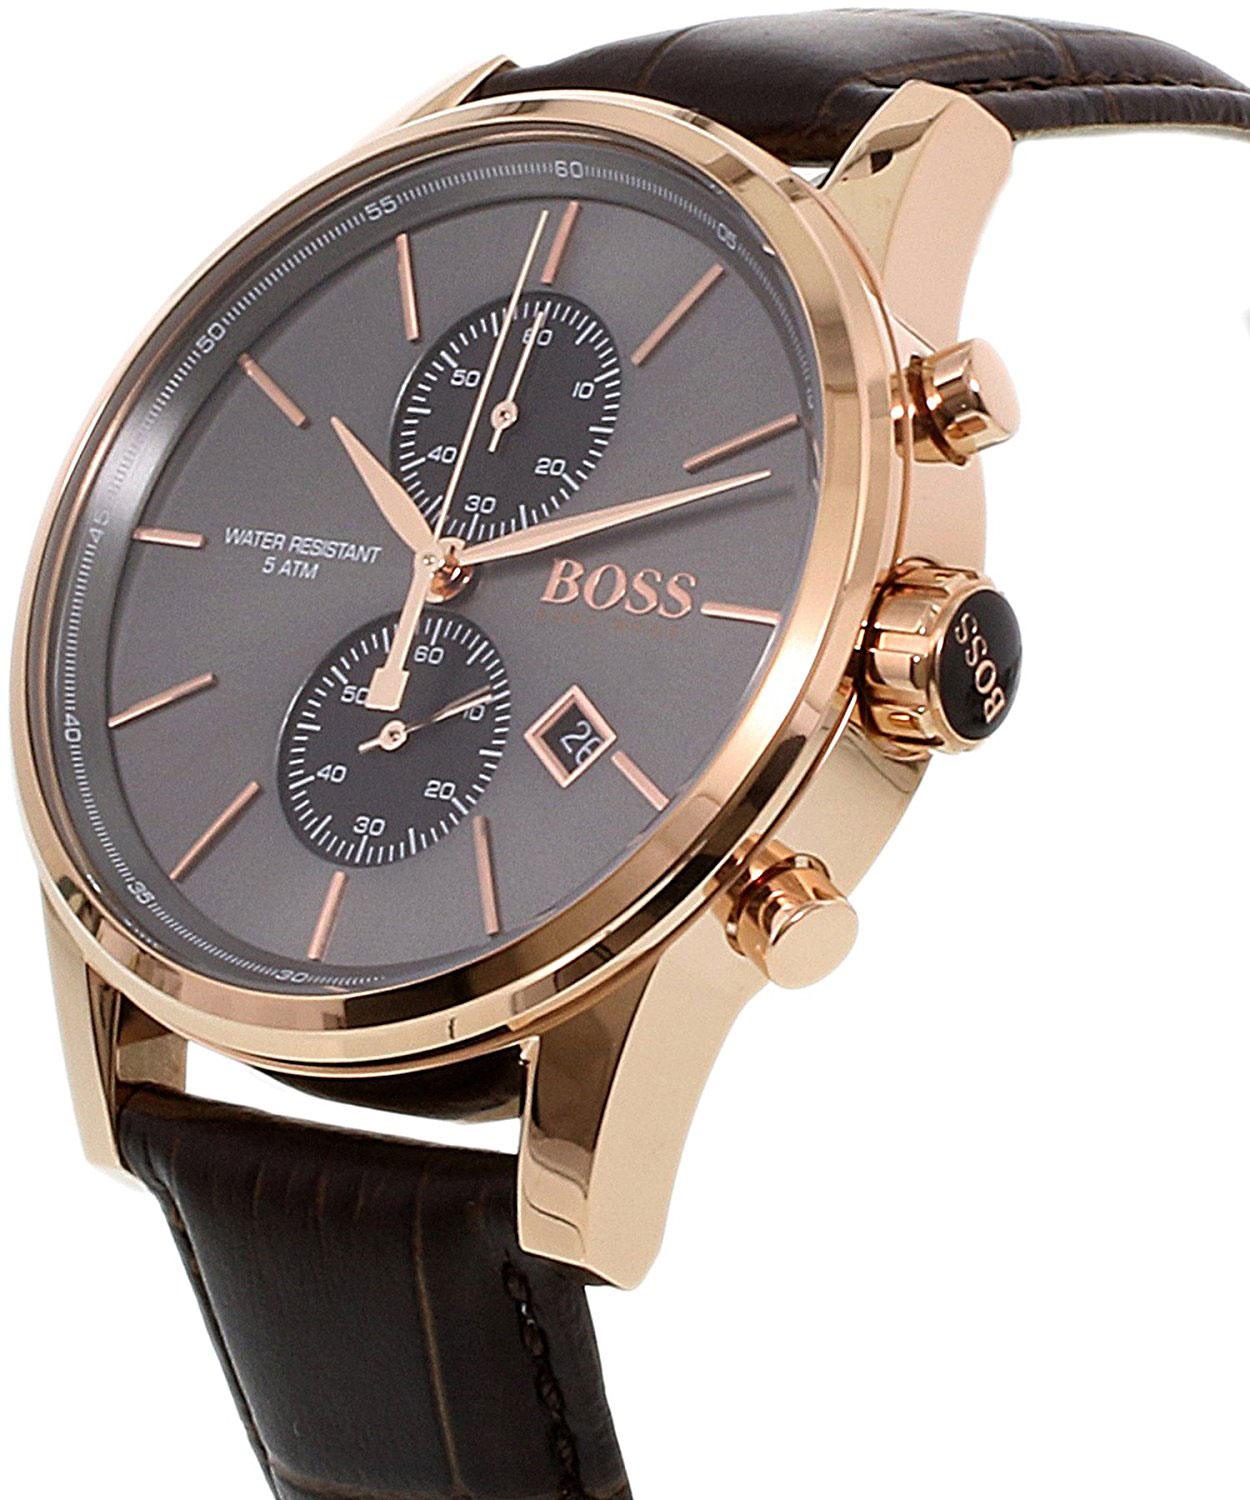 hugo boss watch with rose gold stainless steel and black leather strap 1513281. Black Bedroom Furniture Sets. Home Design Ideas